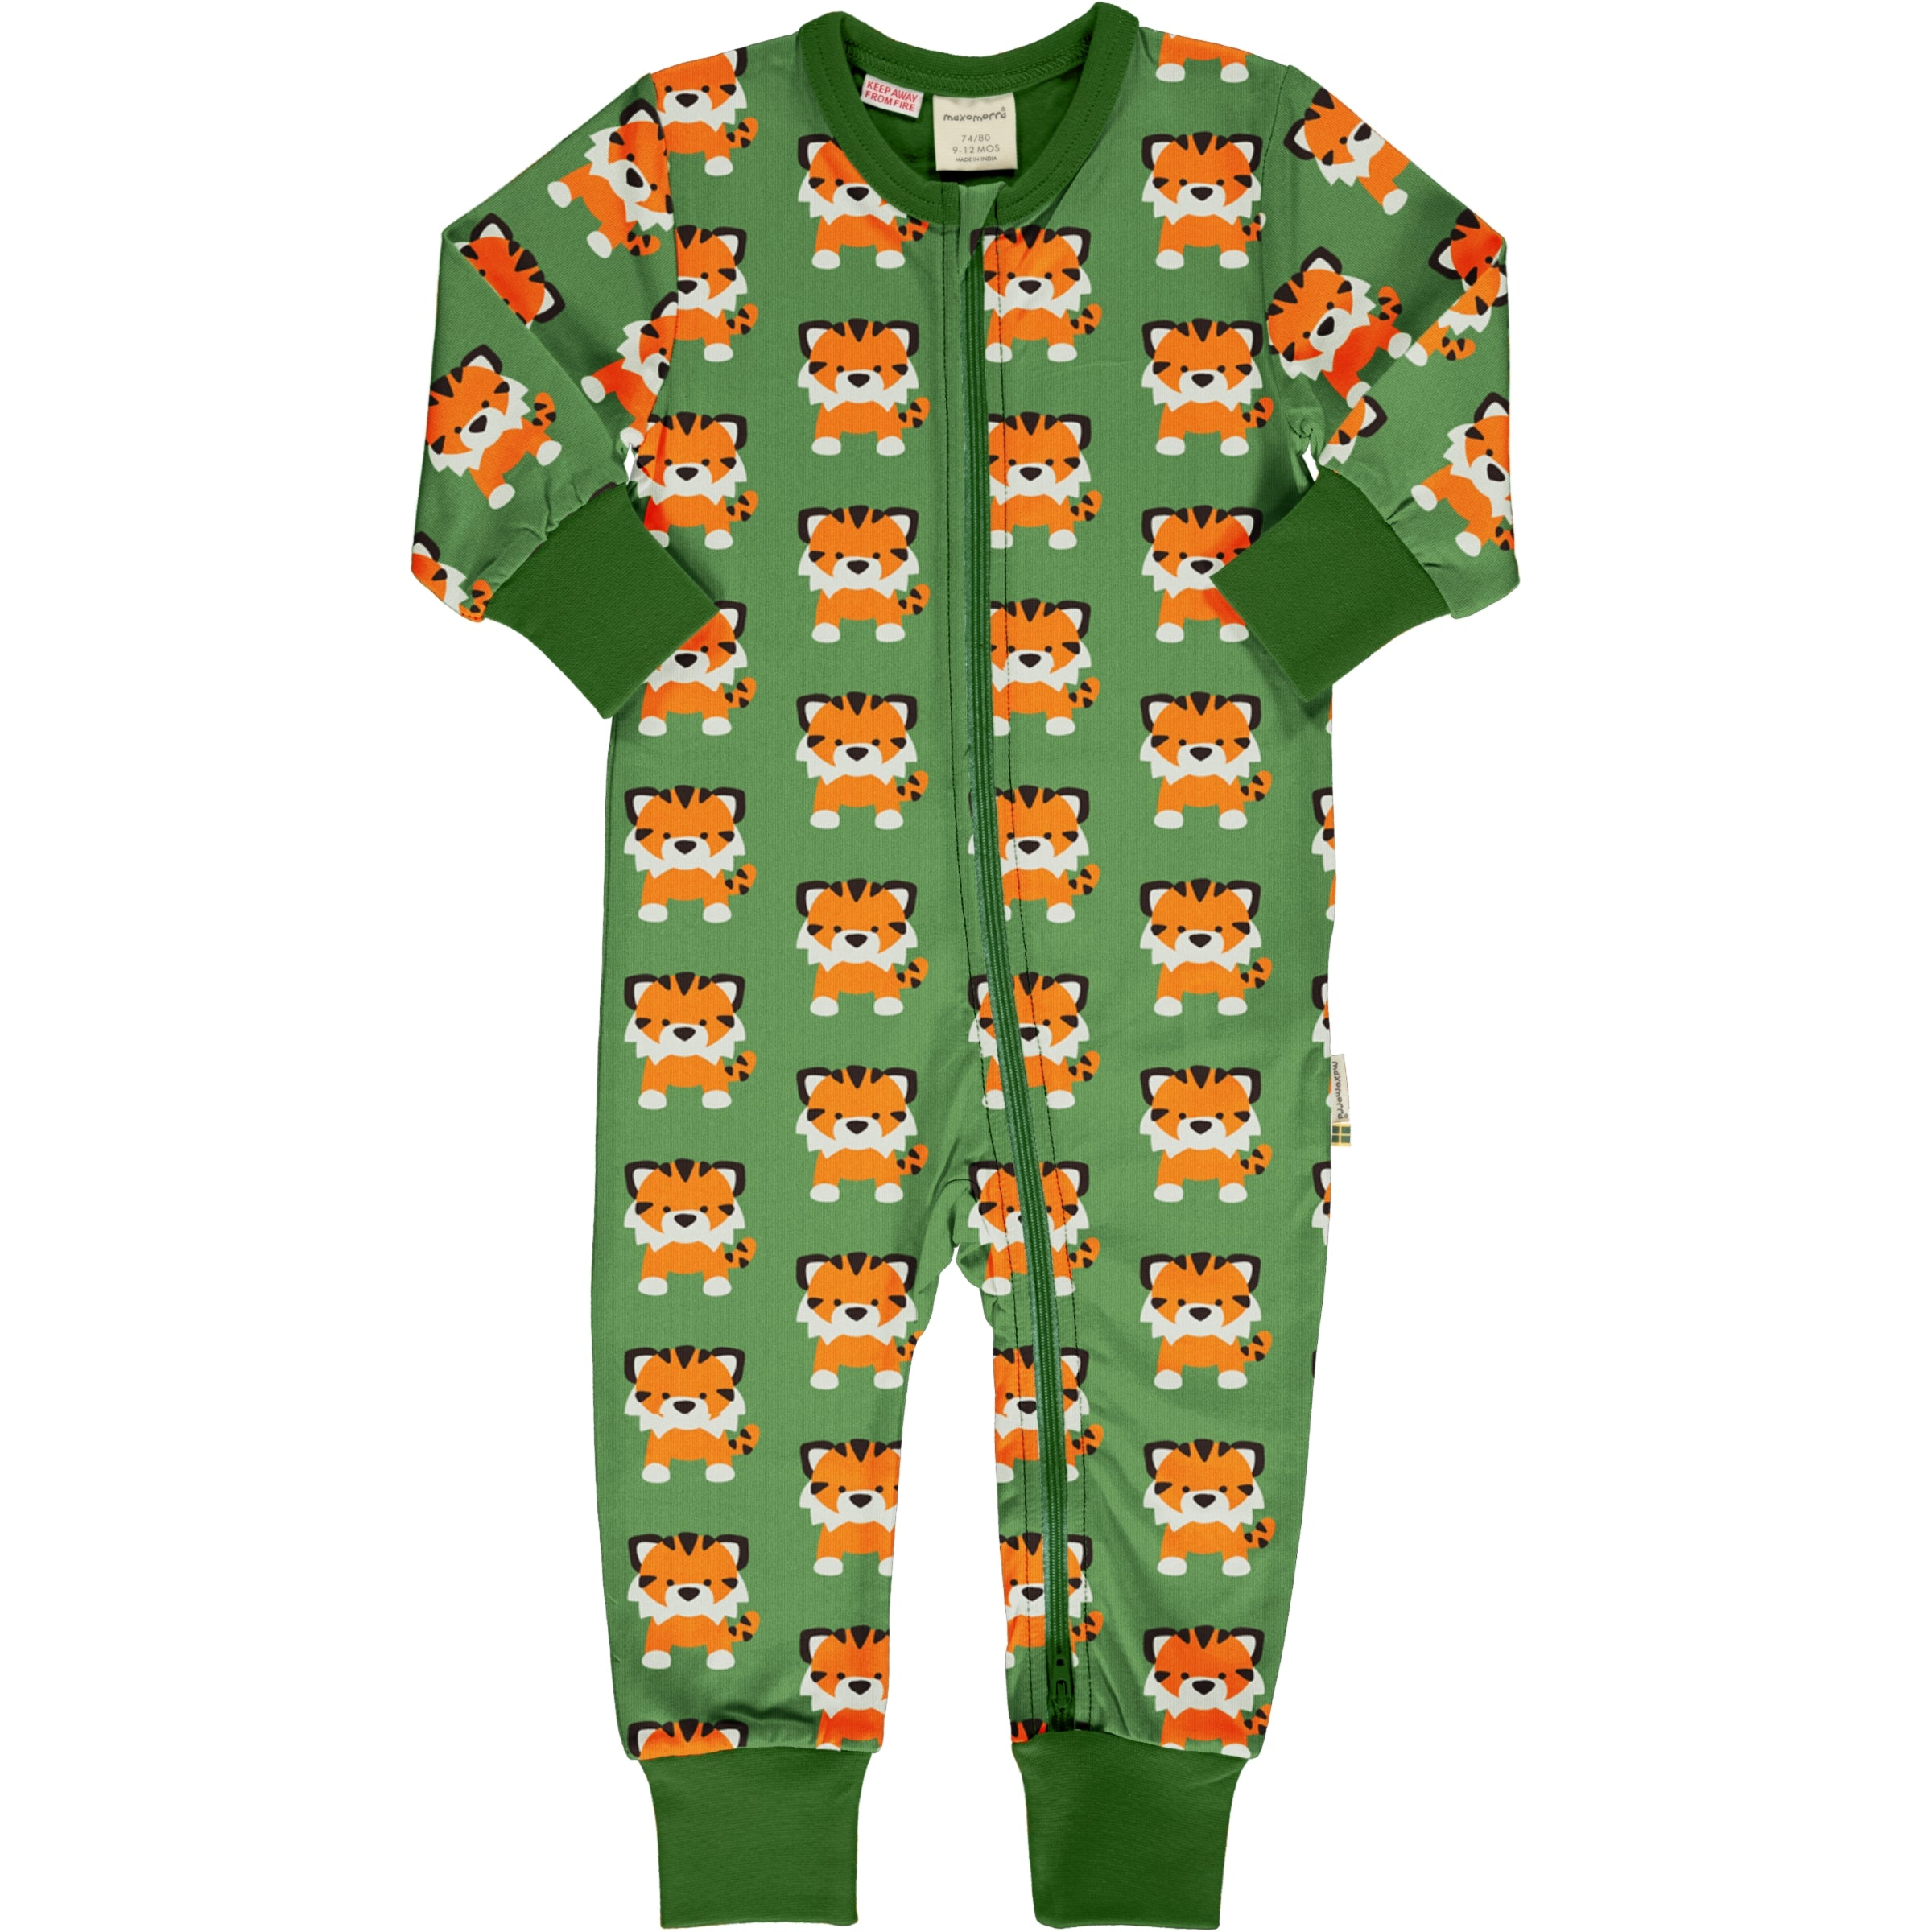 Maxomorra Rompersuit LS Tangerine Tiger,little-tiger-togs.